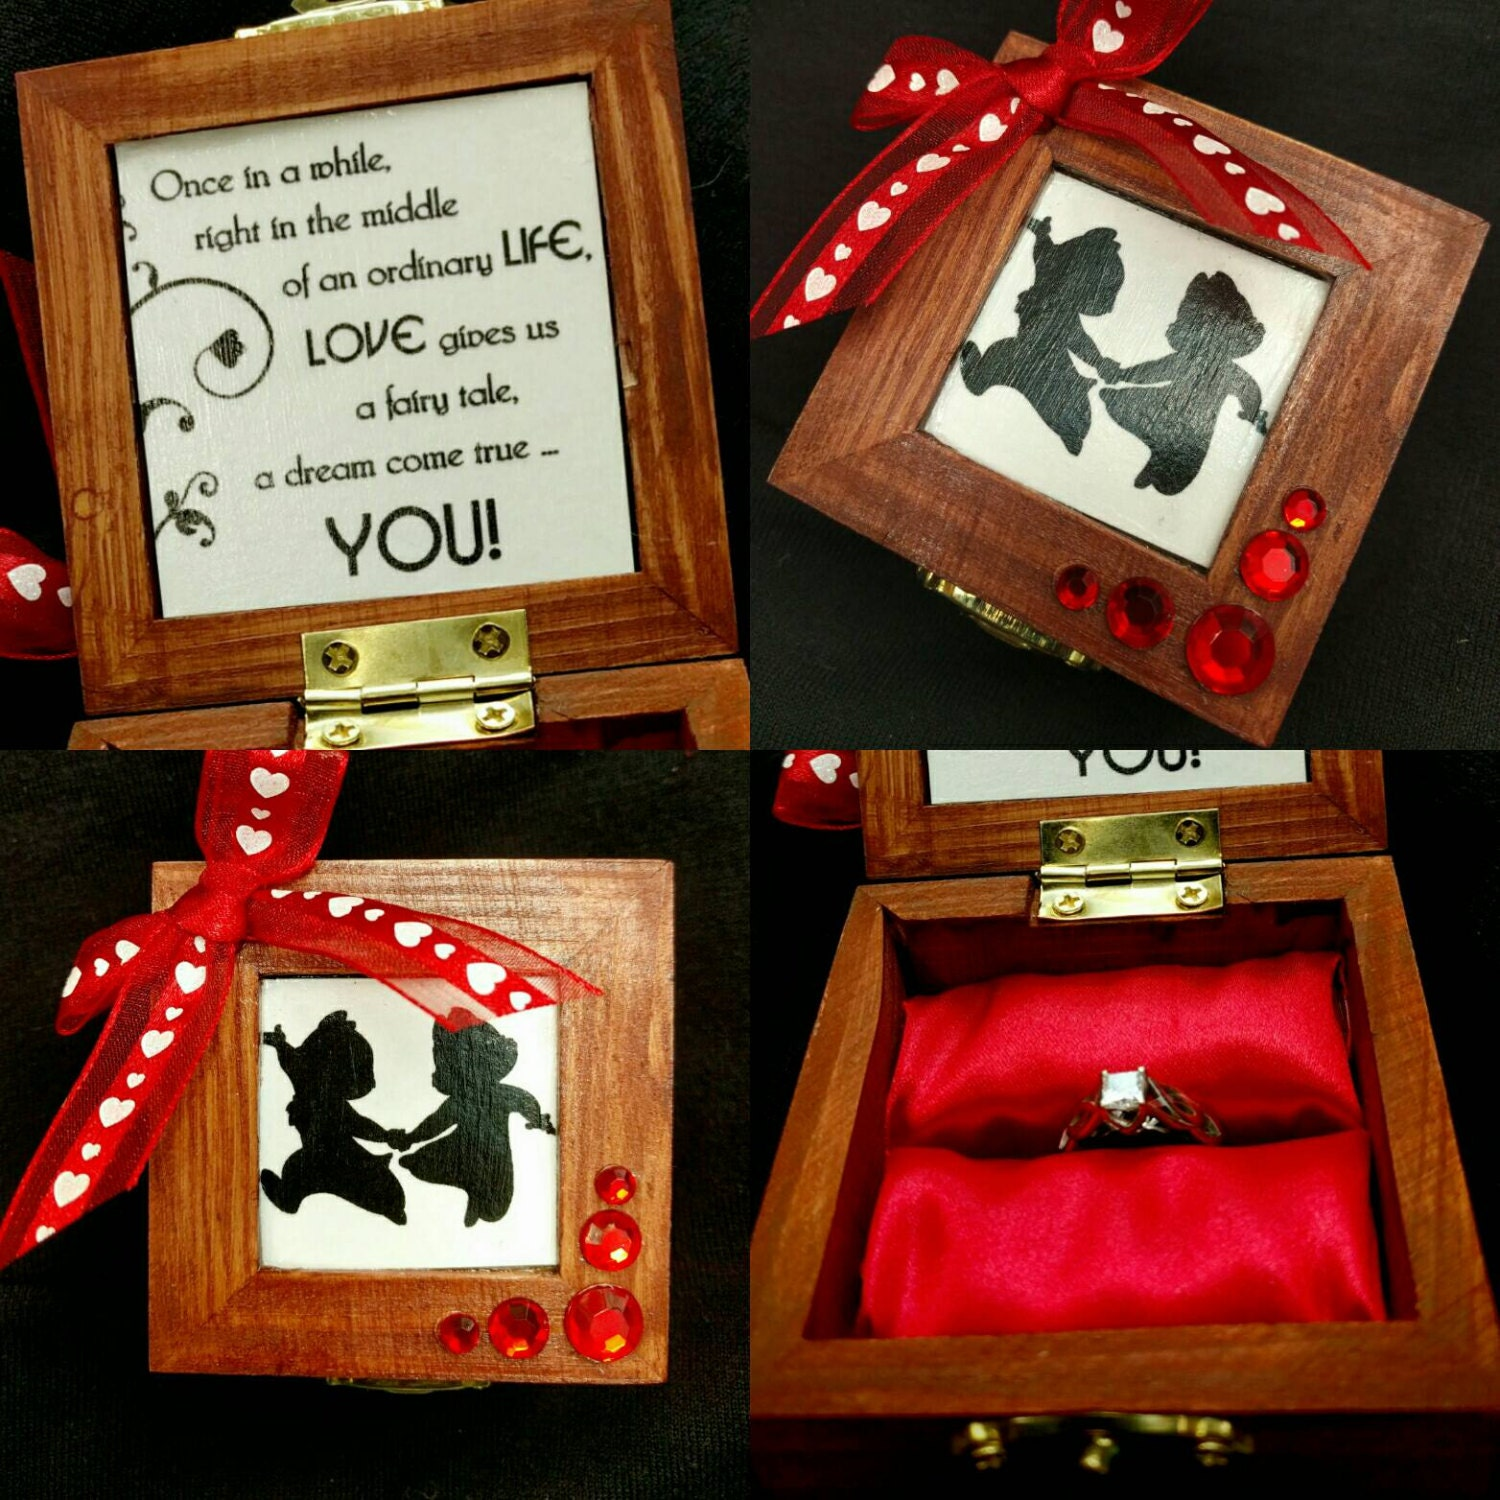 Disney Fairy tale inspired Engagement Ring Box with Quote | Etsy